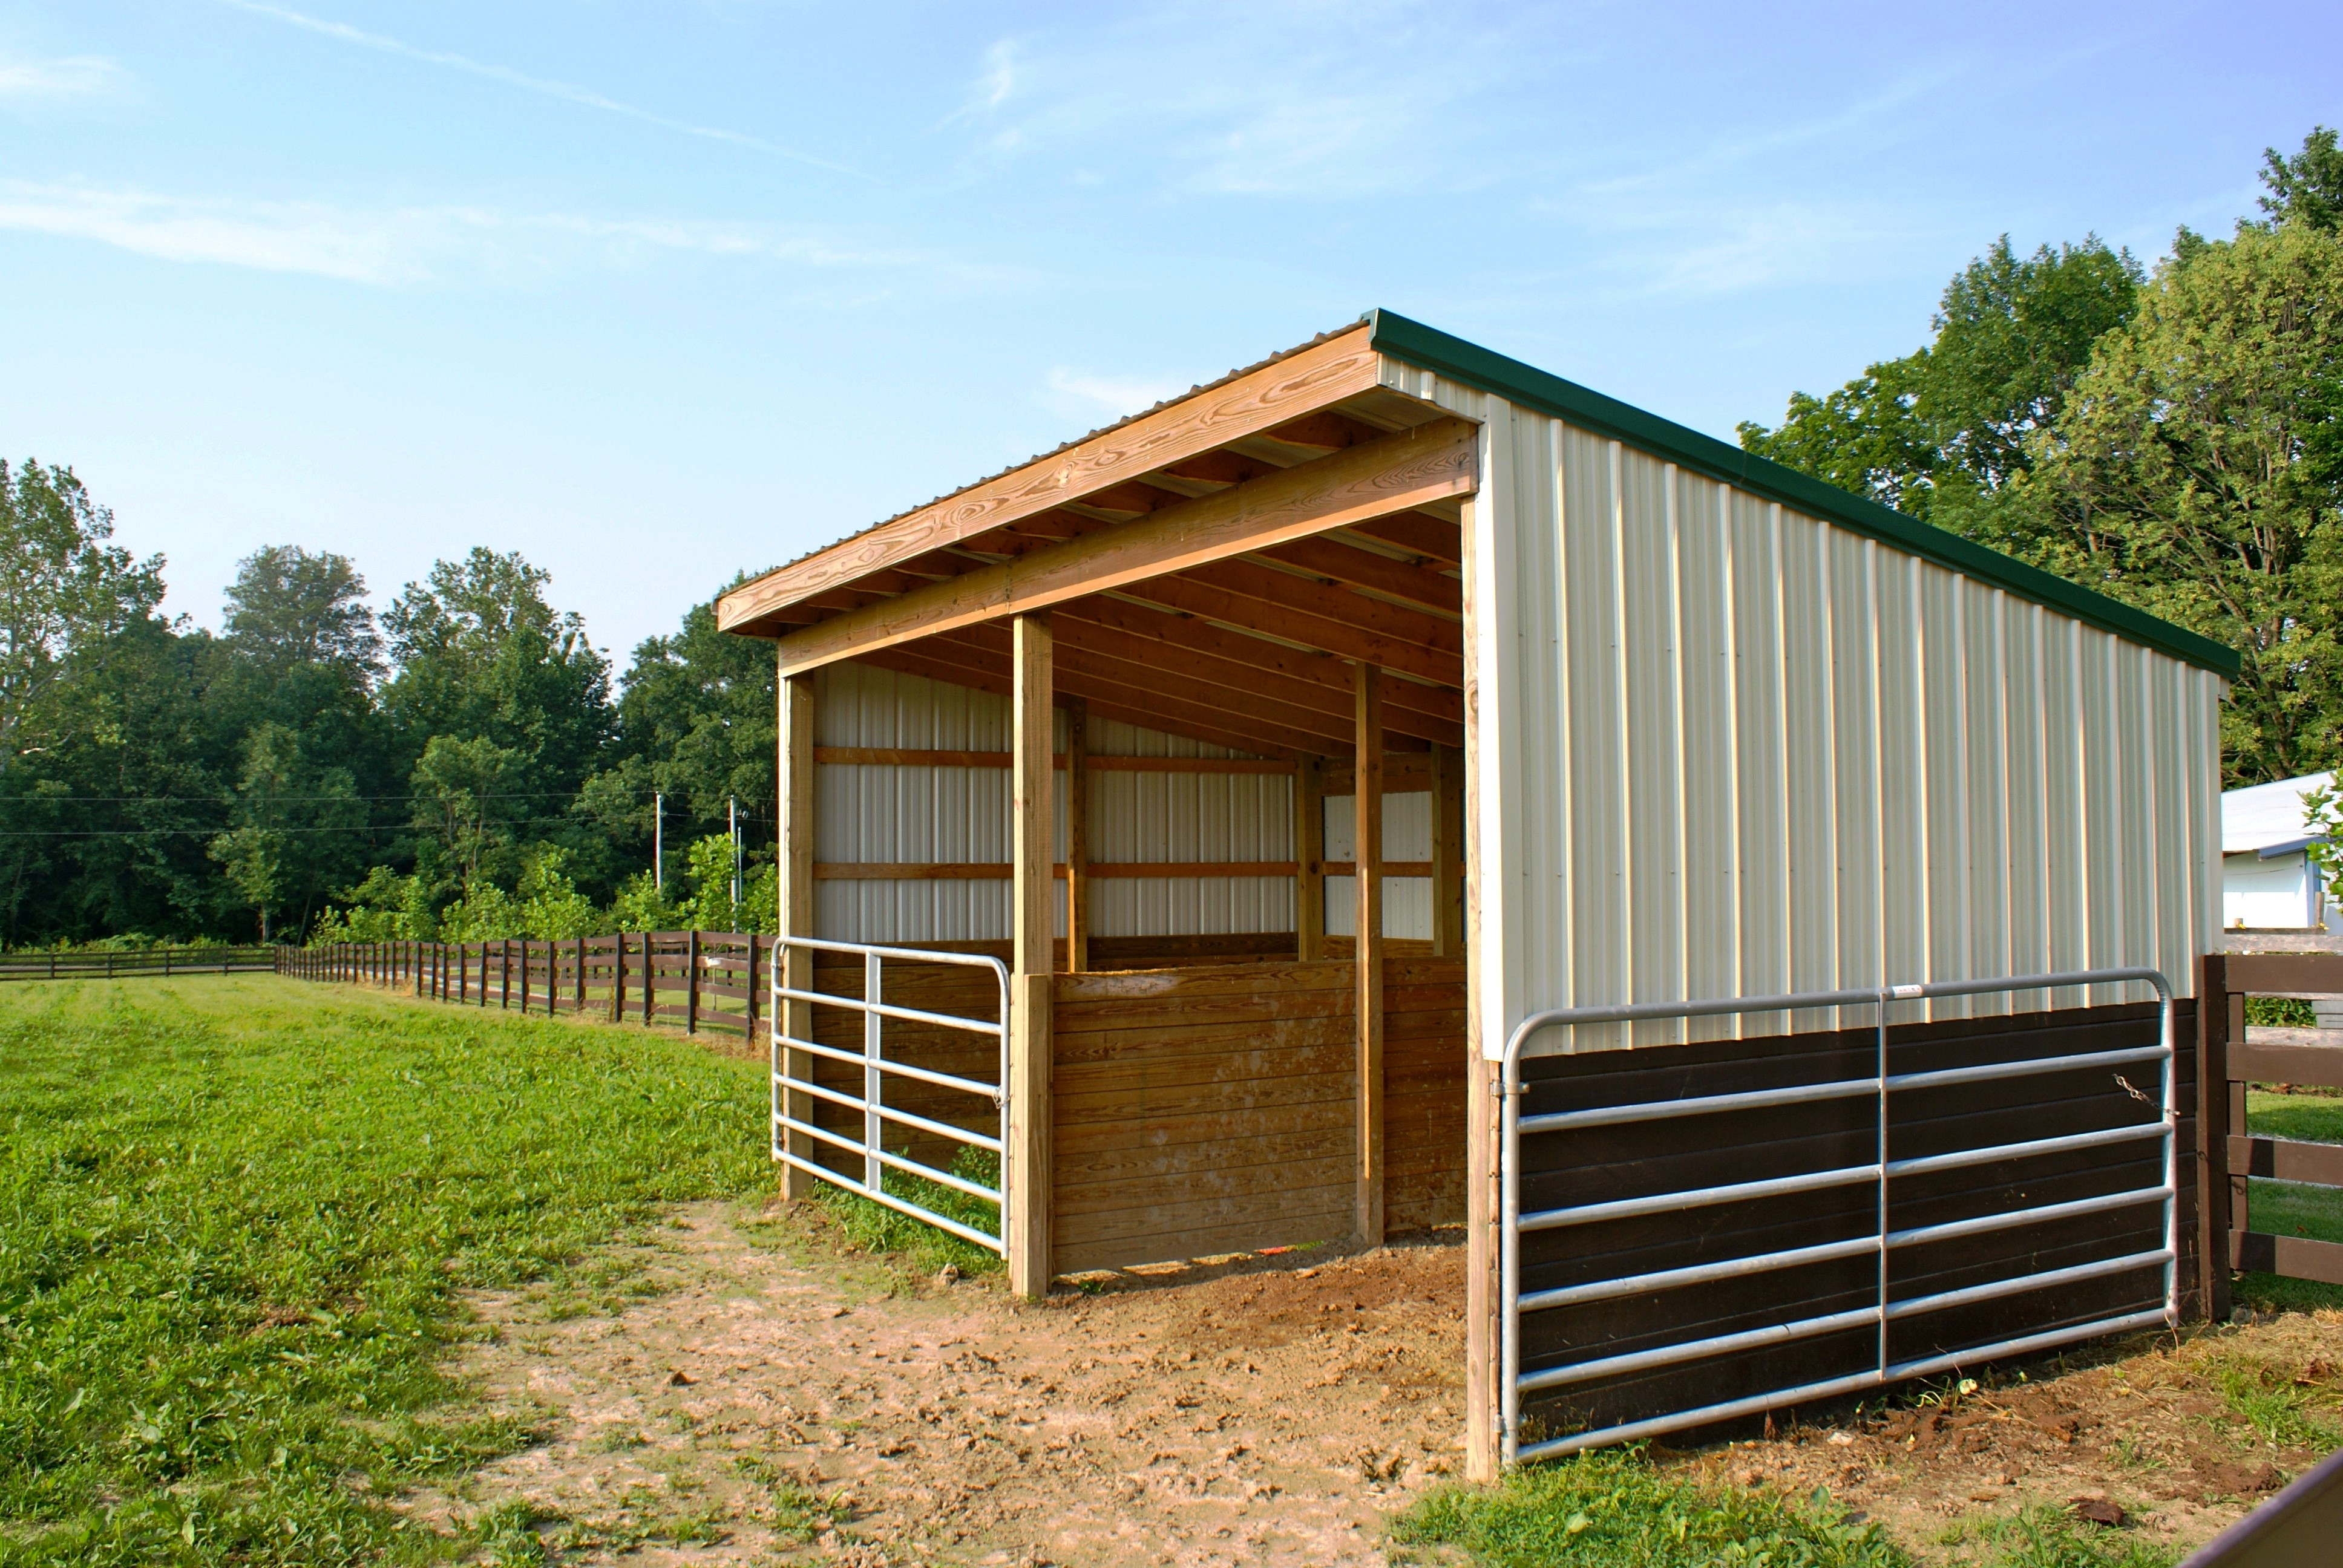 Sheds And Shelters : Horse shelters stalls vs run in sheds welcome to